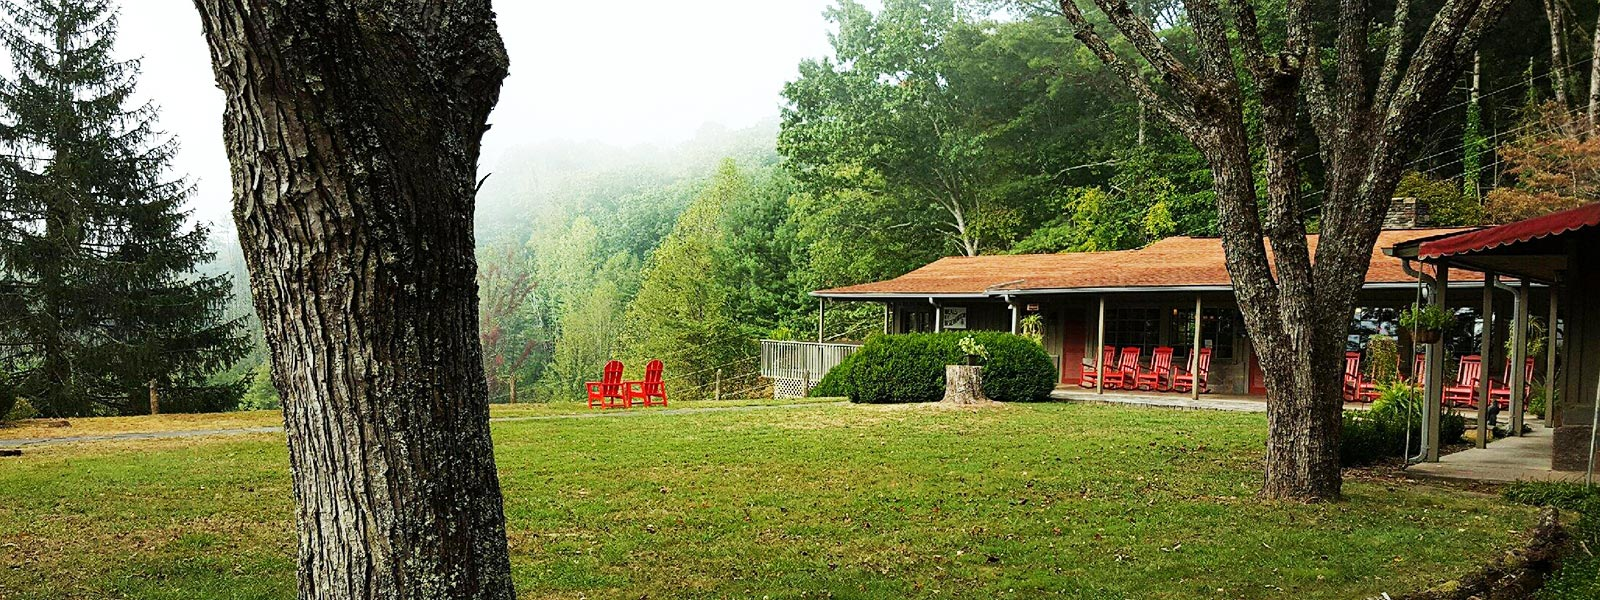 centered carolina north nc want from best fully furnished mountain of all pin are blue cabins rentals ridge these views mountains enjoy in asheville around check cabin the